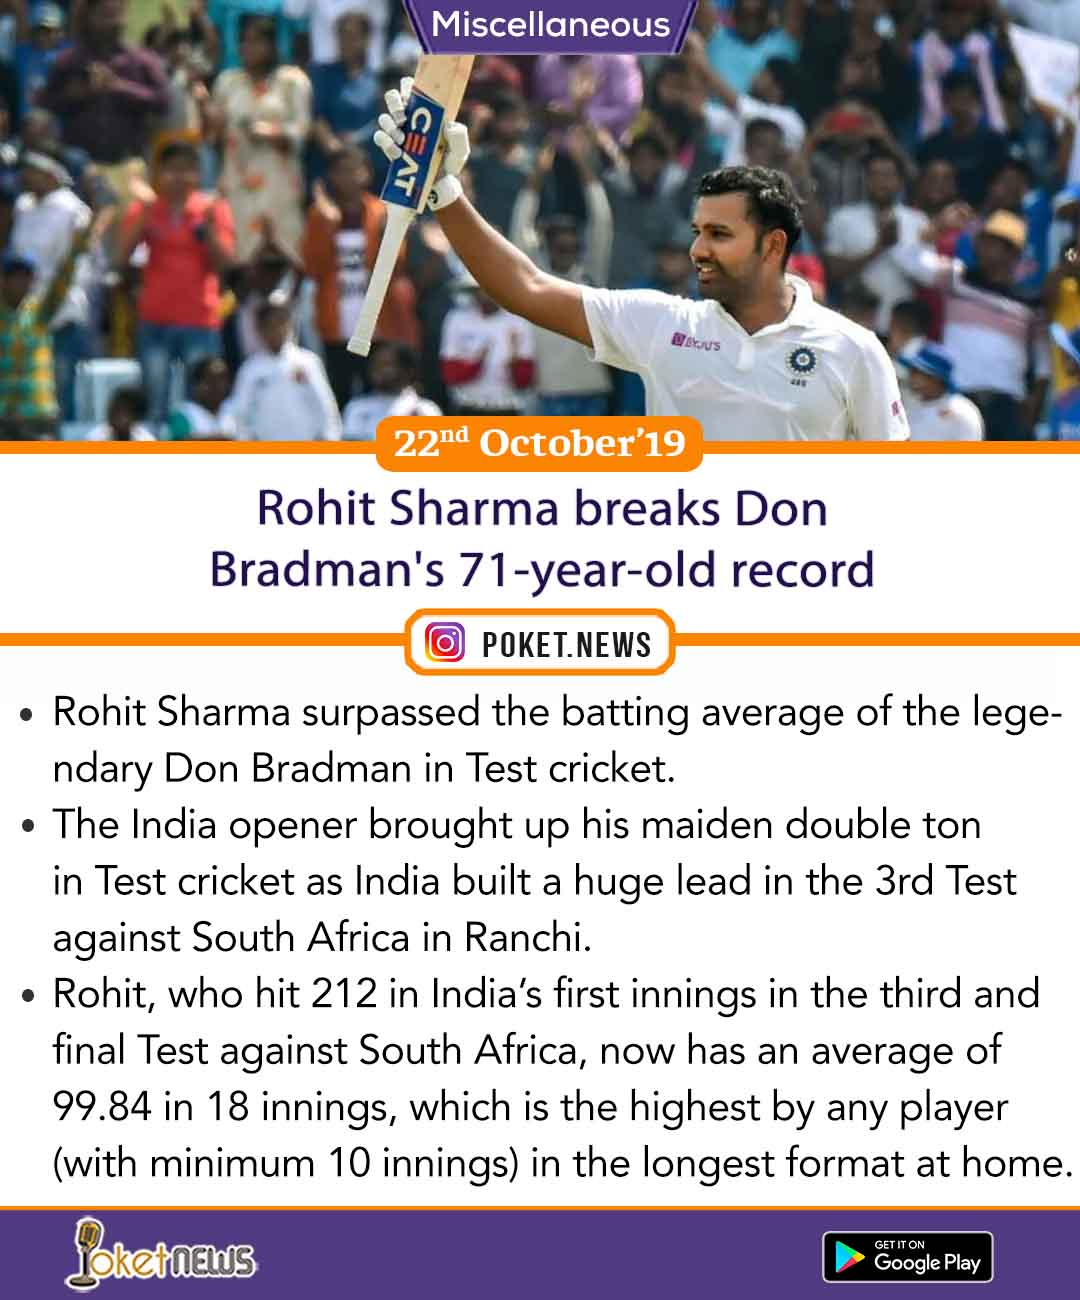 Rohit Sharma breaks Don Bradman's 71-year-old record